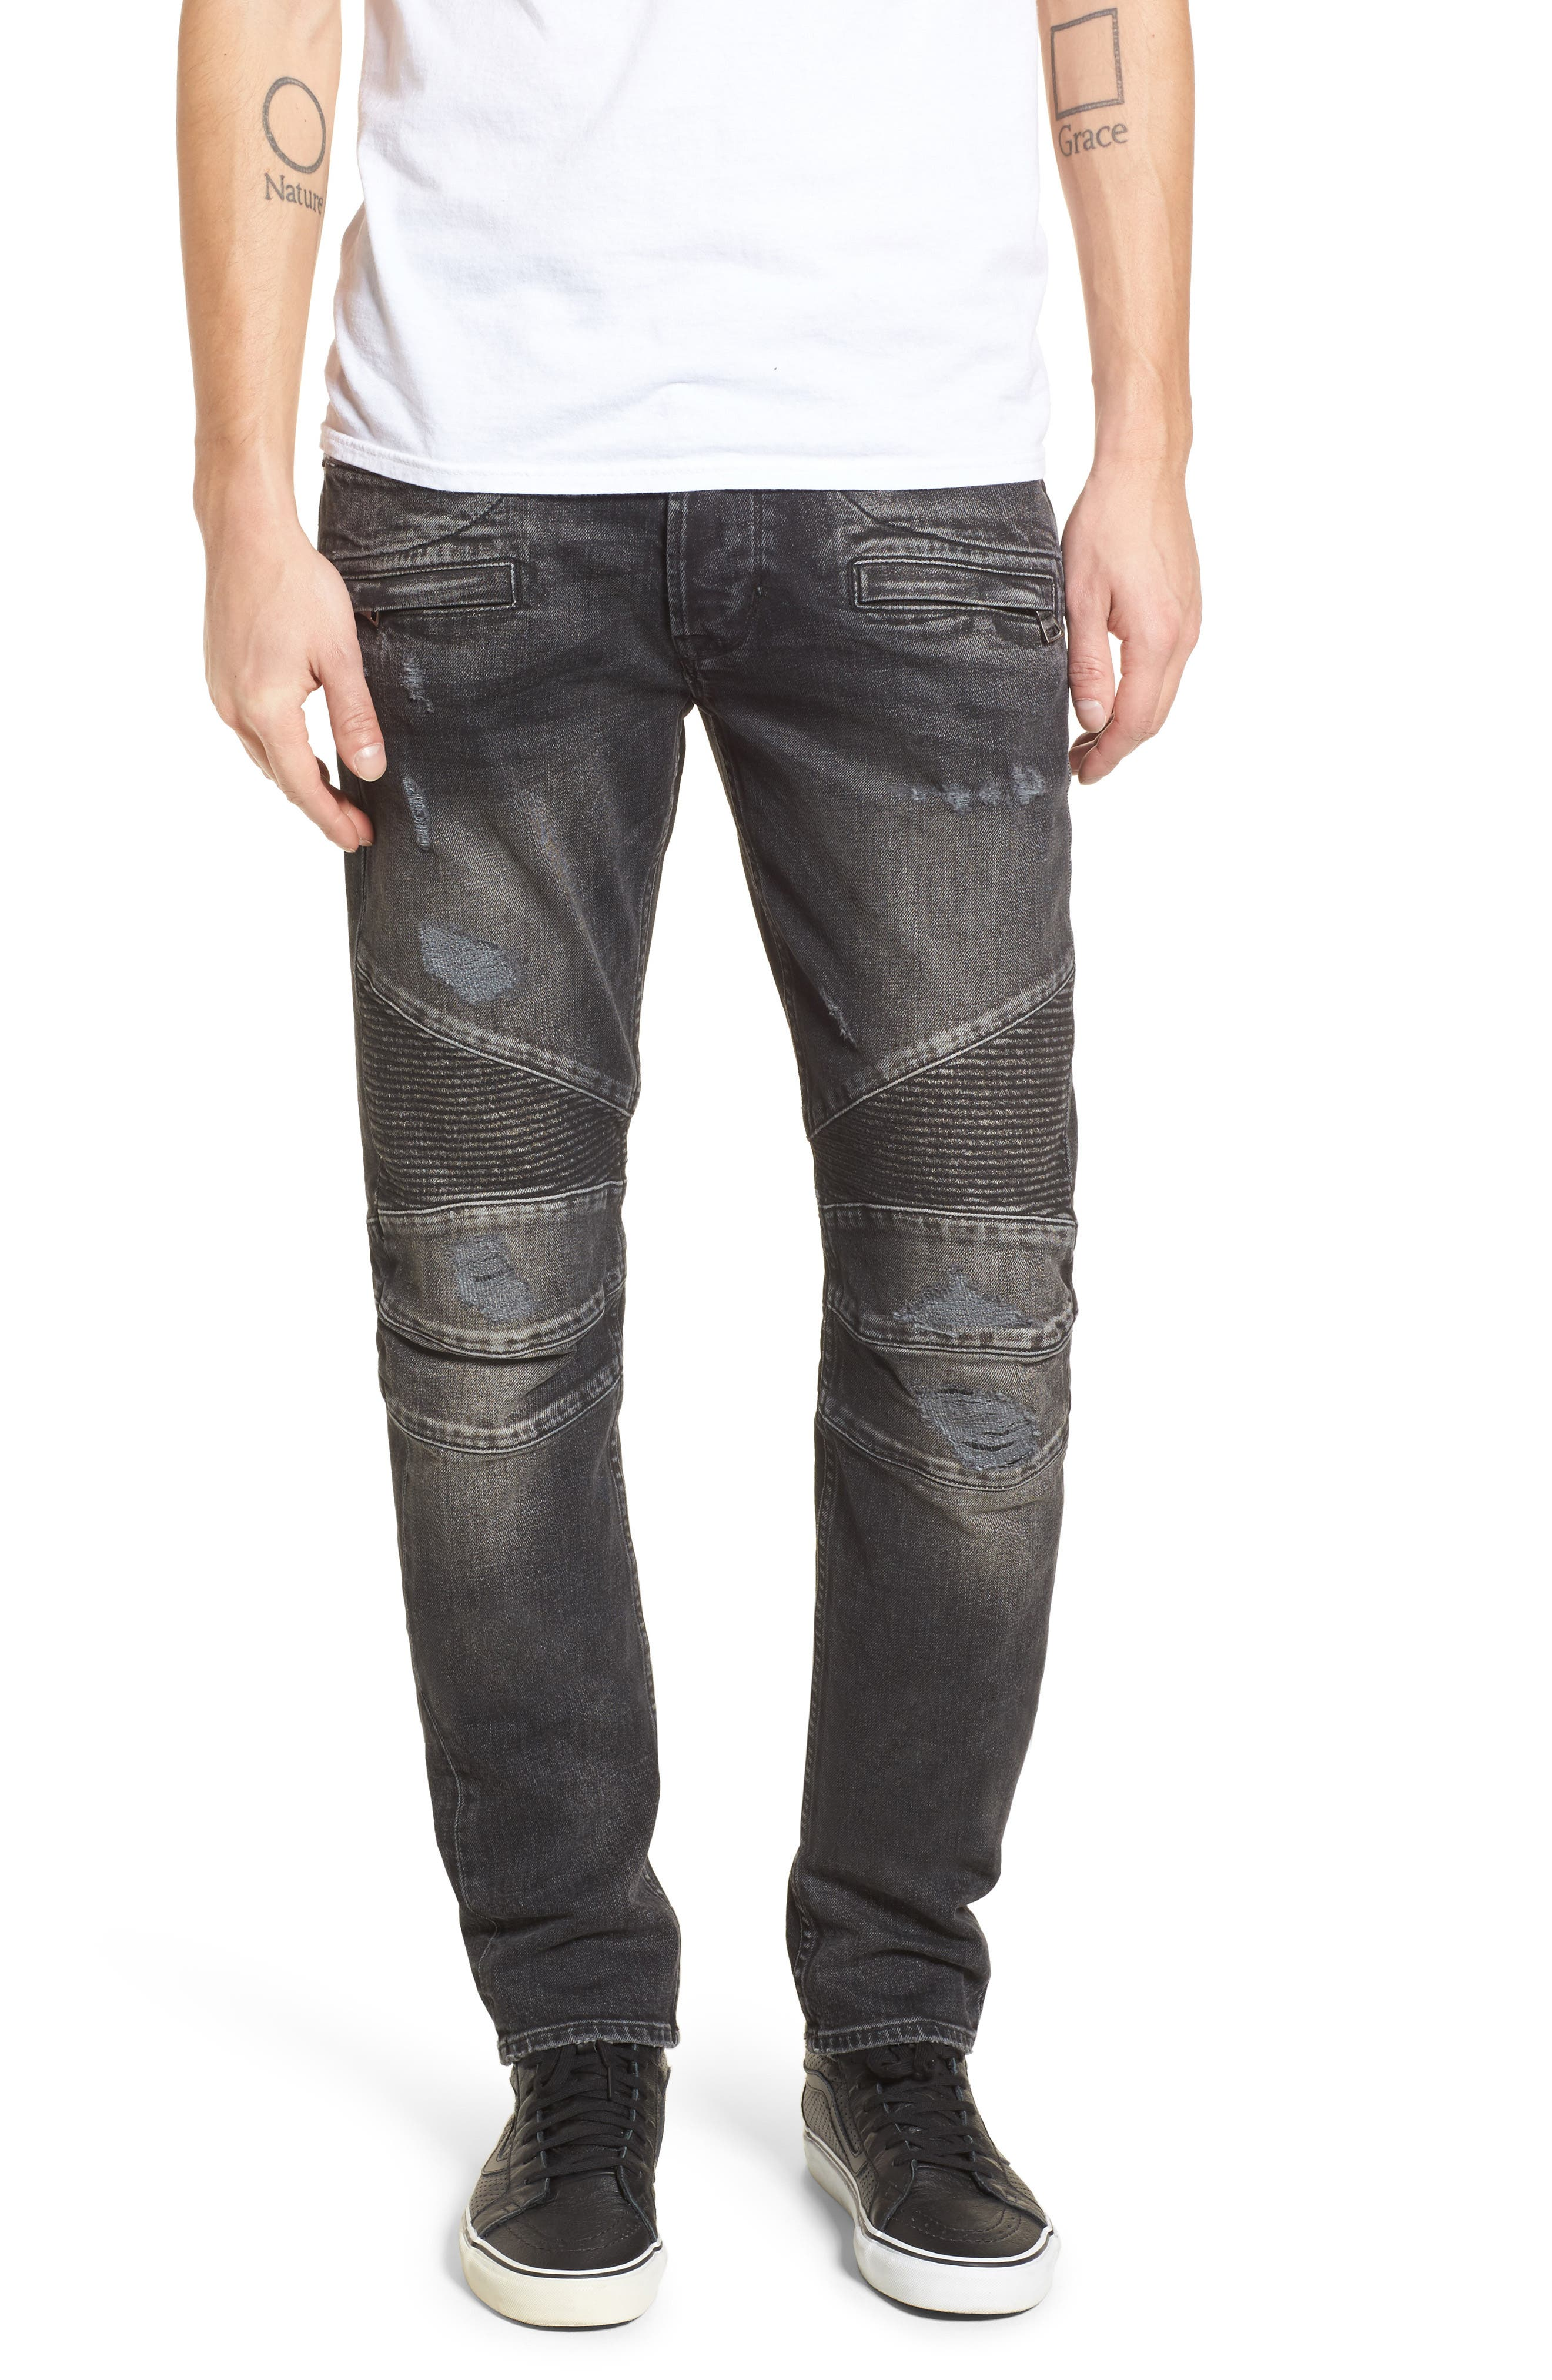 Blinder Biker Skinny Fit Jeans,                         Main,                         color, HACKER